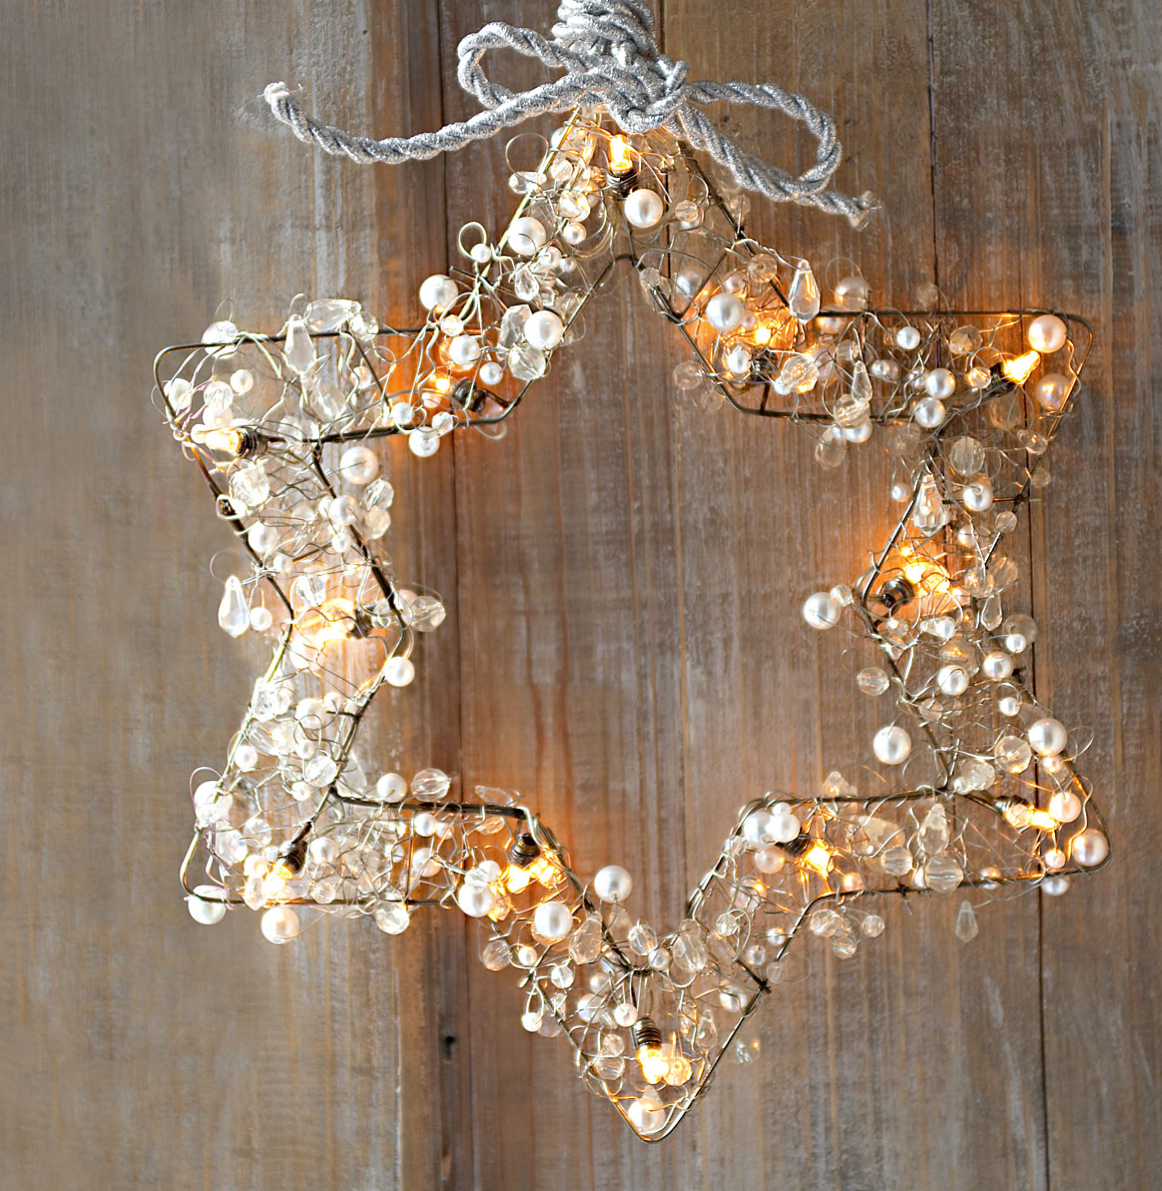 50 trendy and beautiful diy christmas lights decoration ideas in 2018 25 six pointed star wrapped wreath aloadofball Choice Image